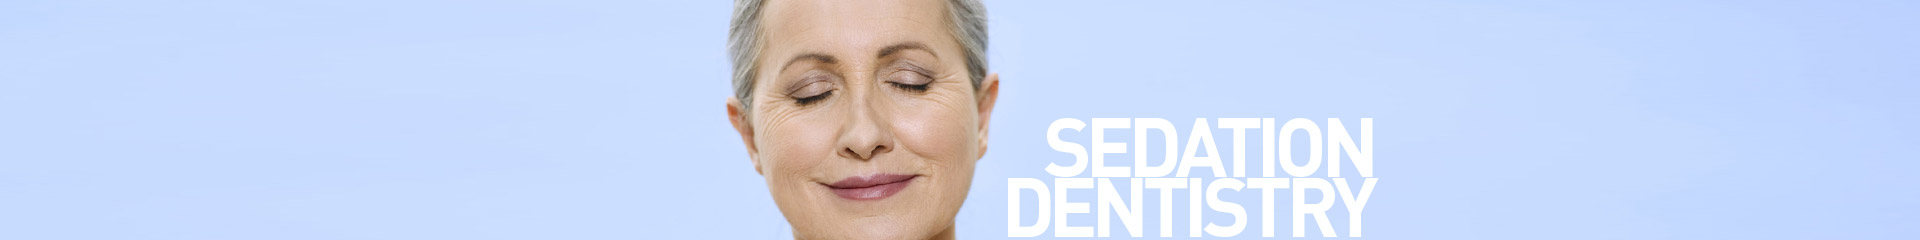 SEDATION DENTISTRY IN Pearl Dental